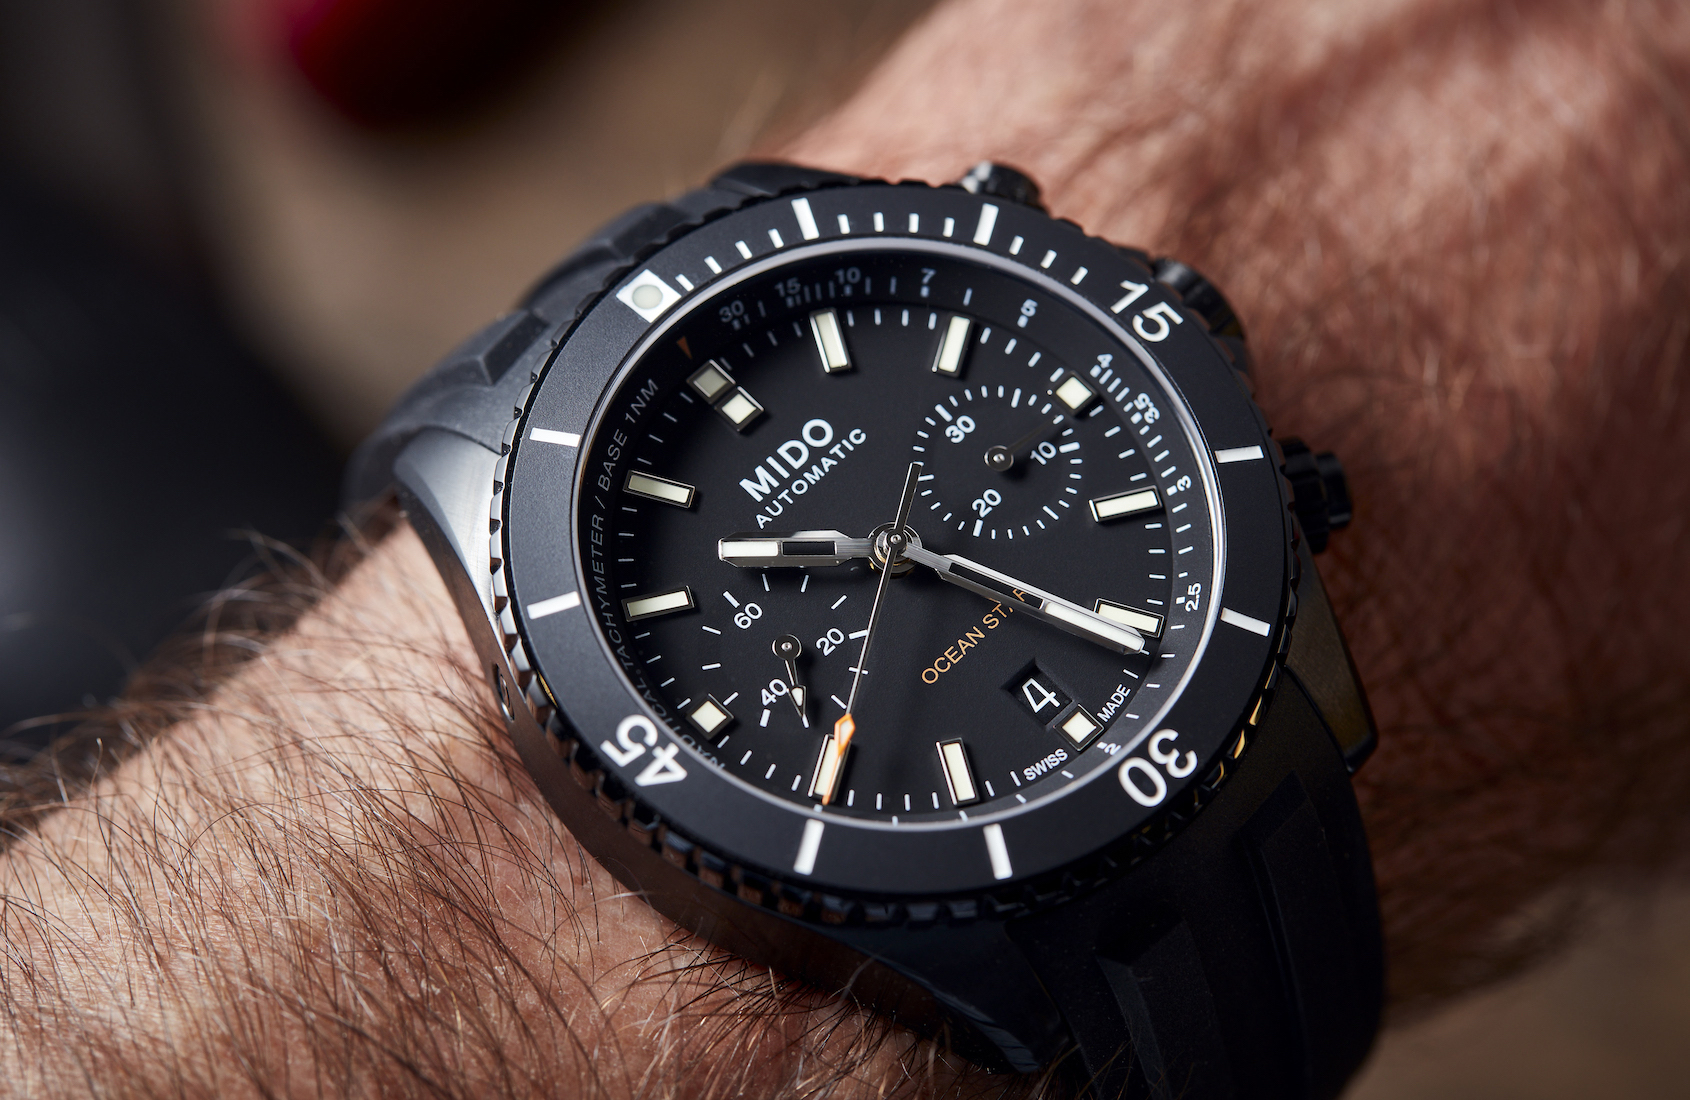 VIDEO: The Mido Ocean Star Chronograph provides twice the functionality at half the cost